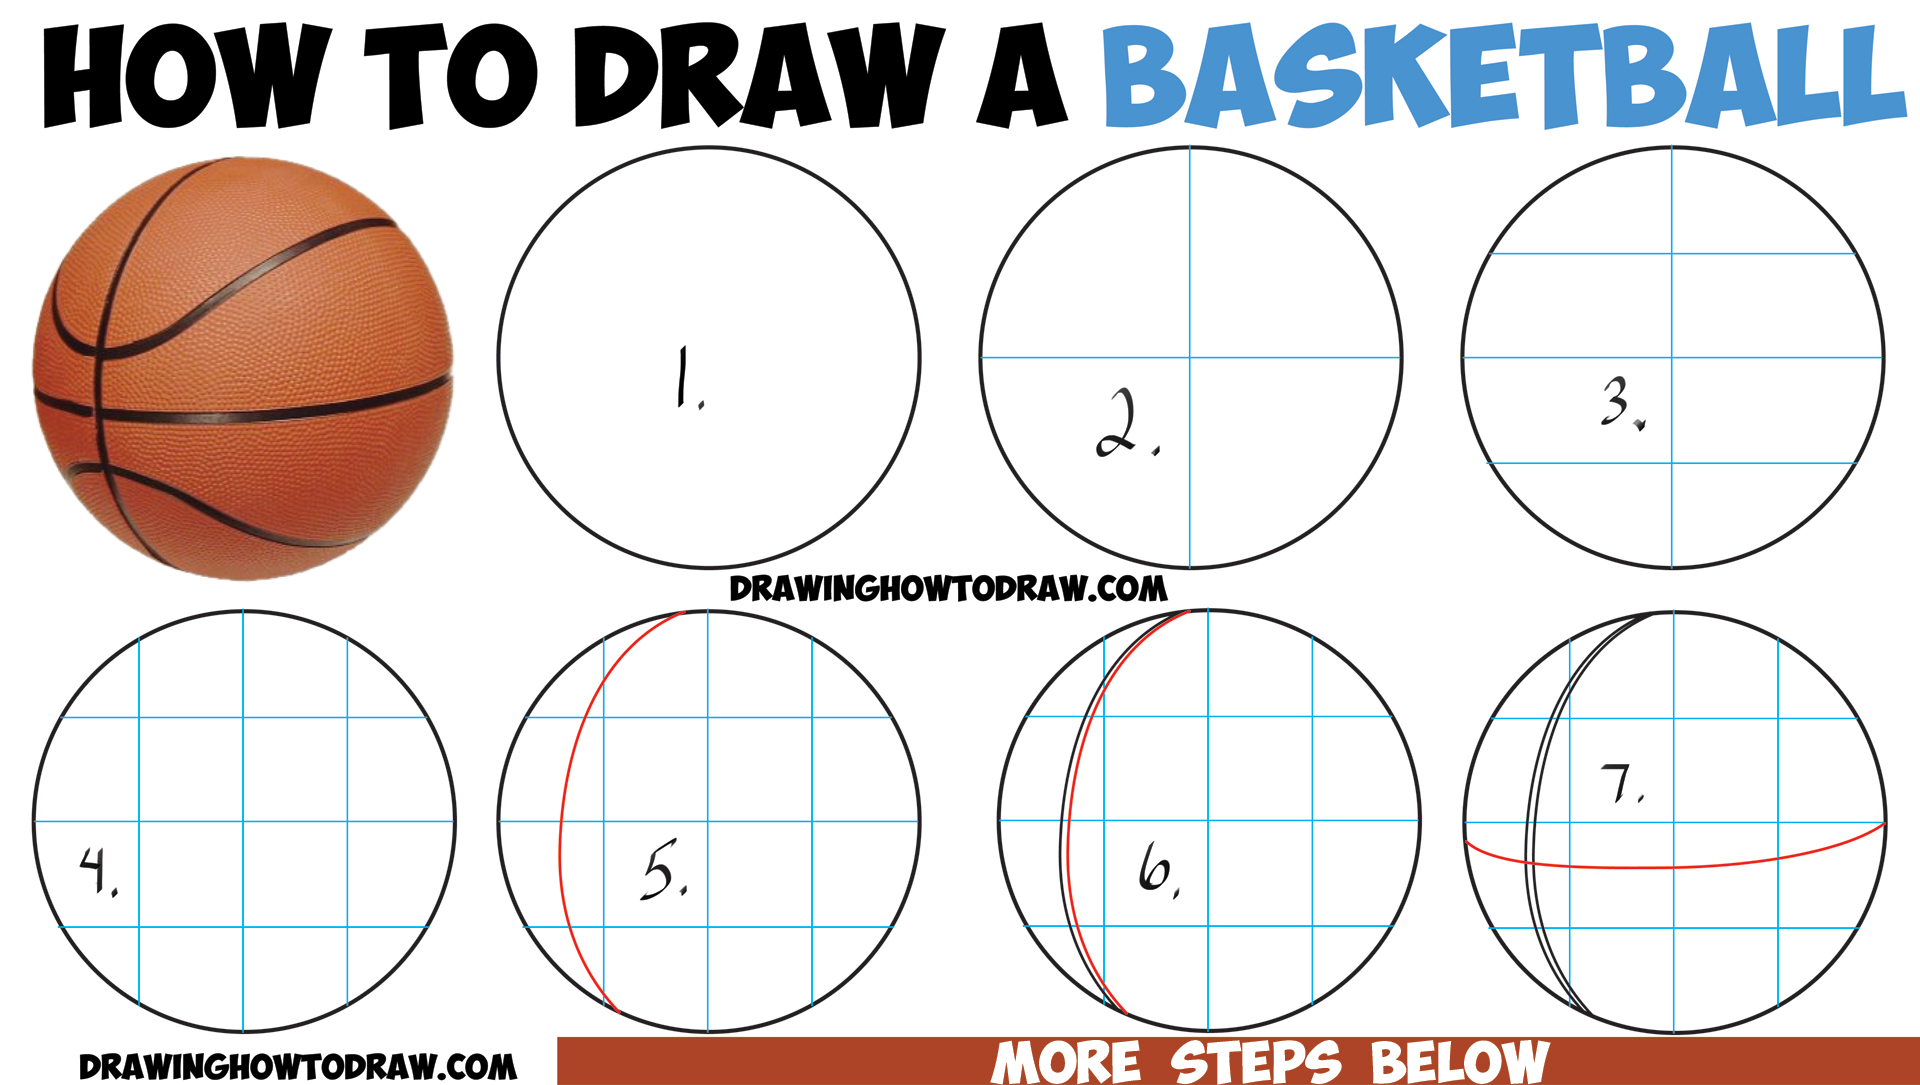 How To Draw A Basketball In Easy Step By Step Drawing Tutorial How To Draw Step By Step Drawing Tutorials